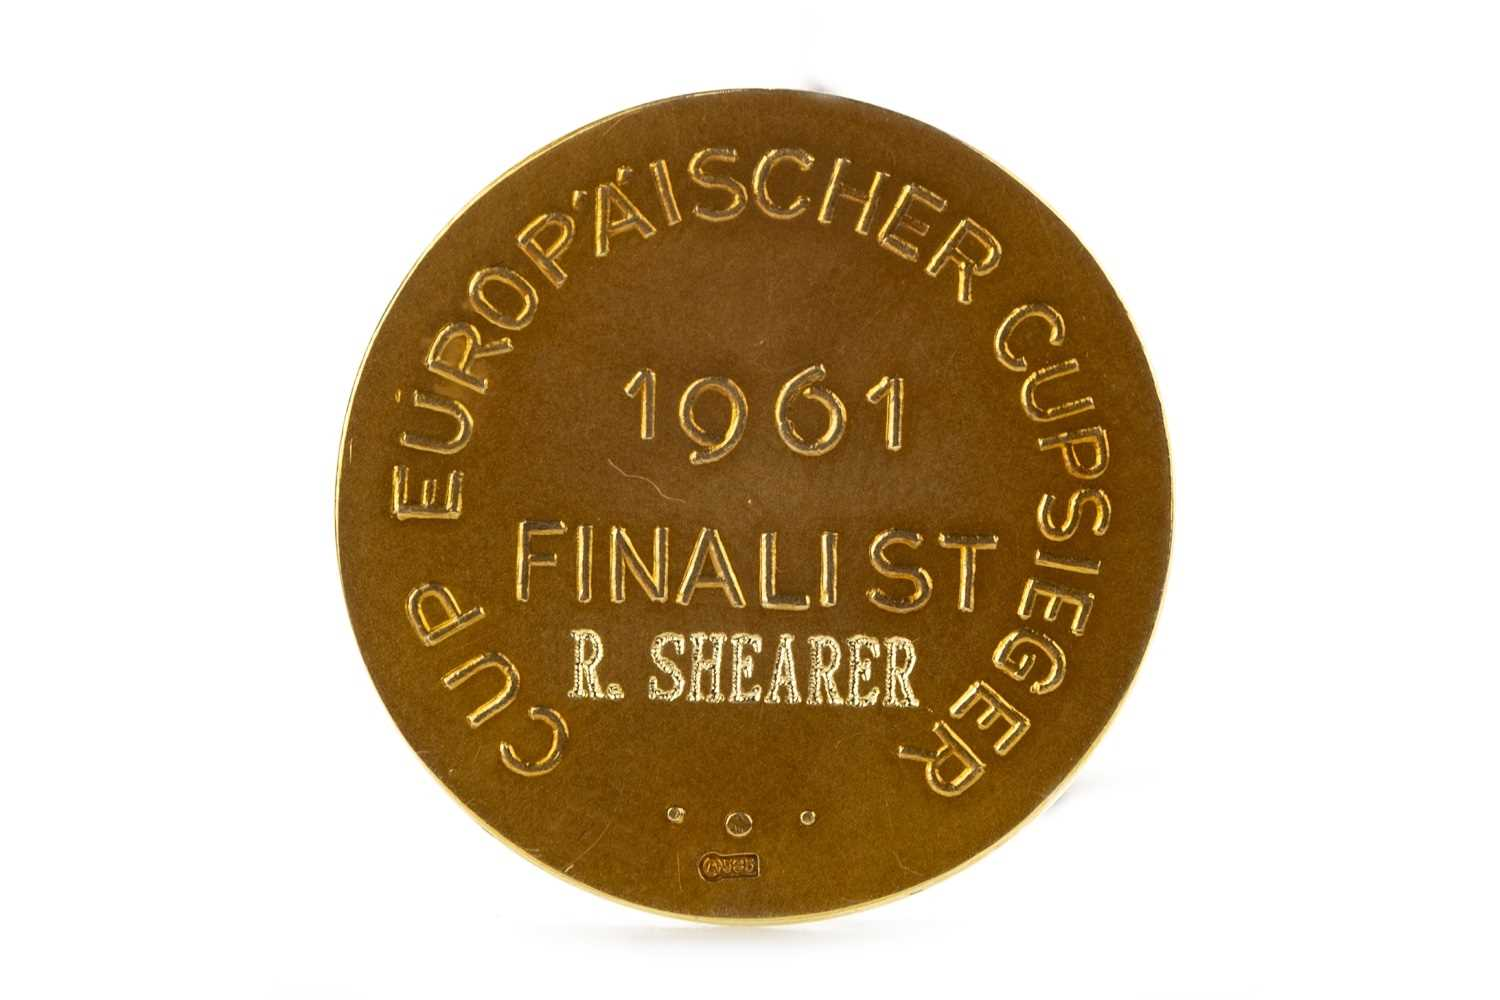 Lot 1942-BOBBY SHEARER 'CAPTAIN CUTLASS' OF RANGERS F.C. - HIS EUROPEAN CUP WINNERS' CUP FINALIST MEDAL 1961